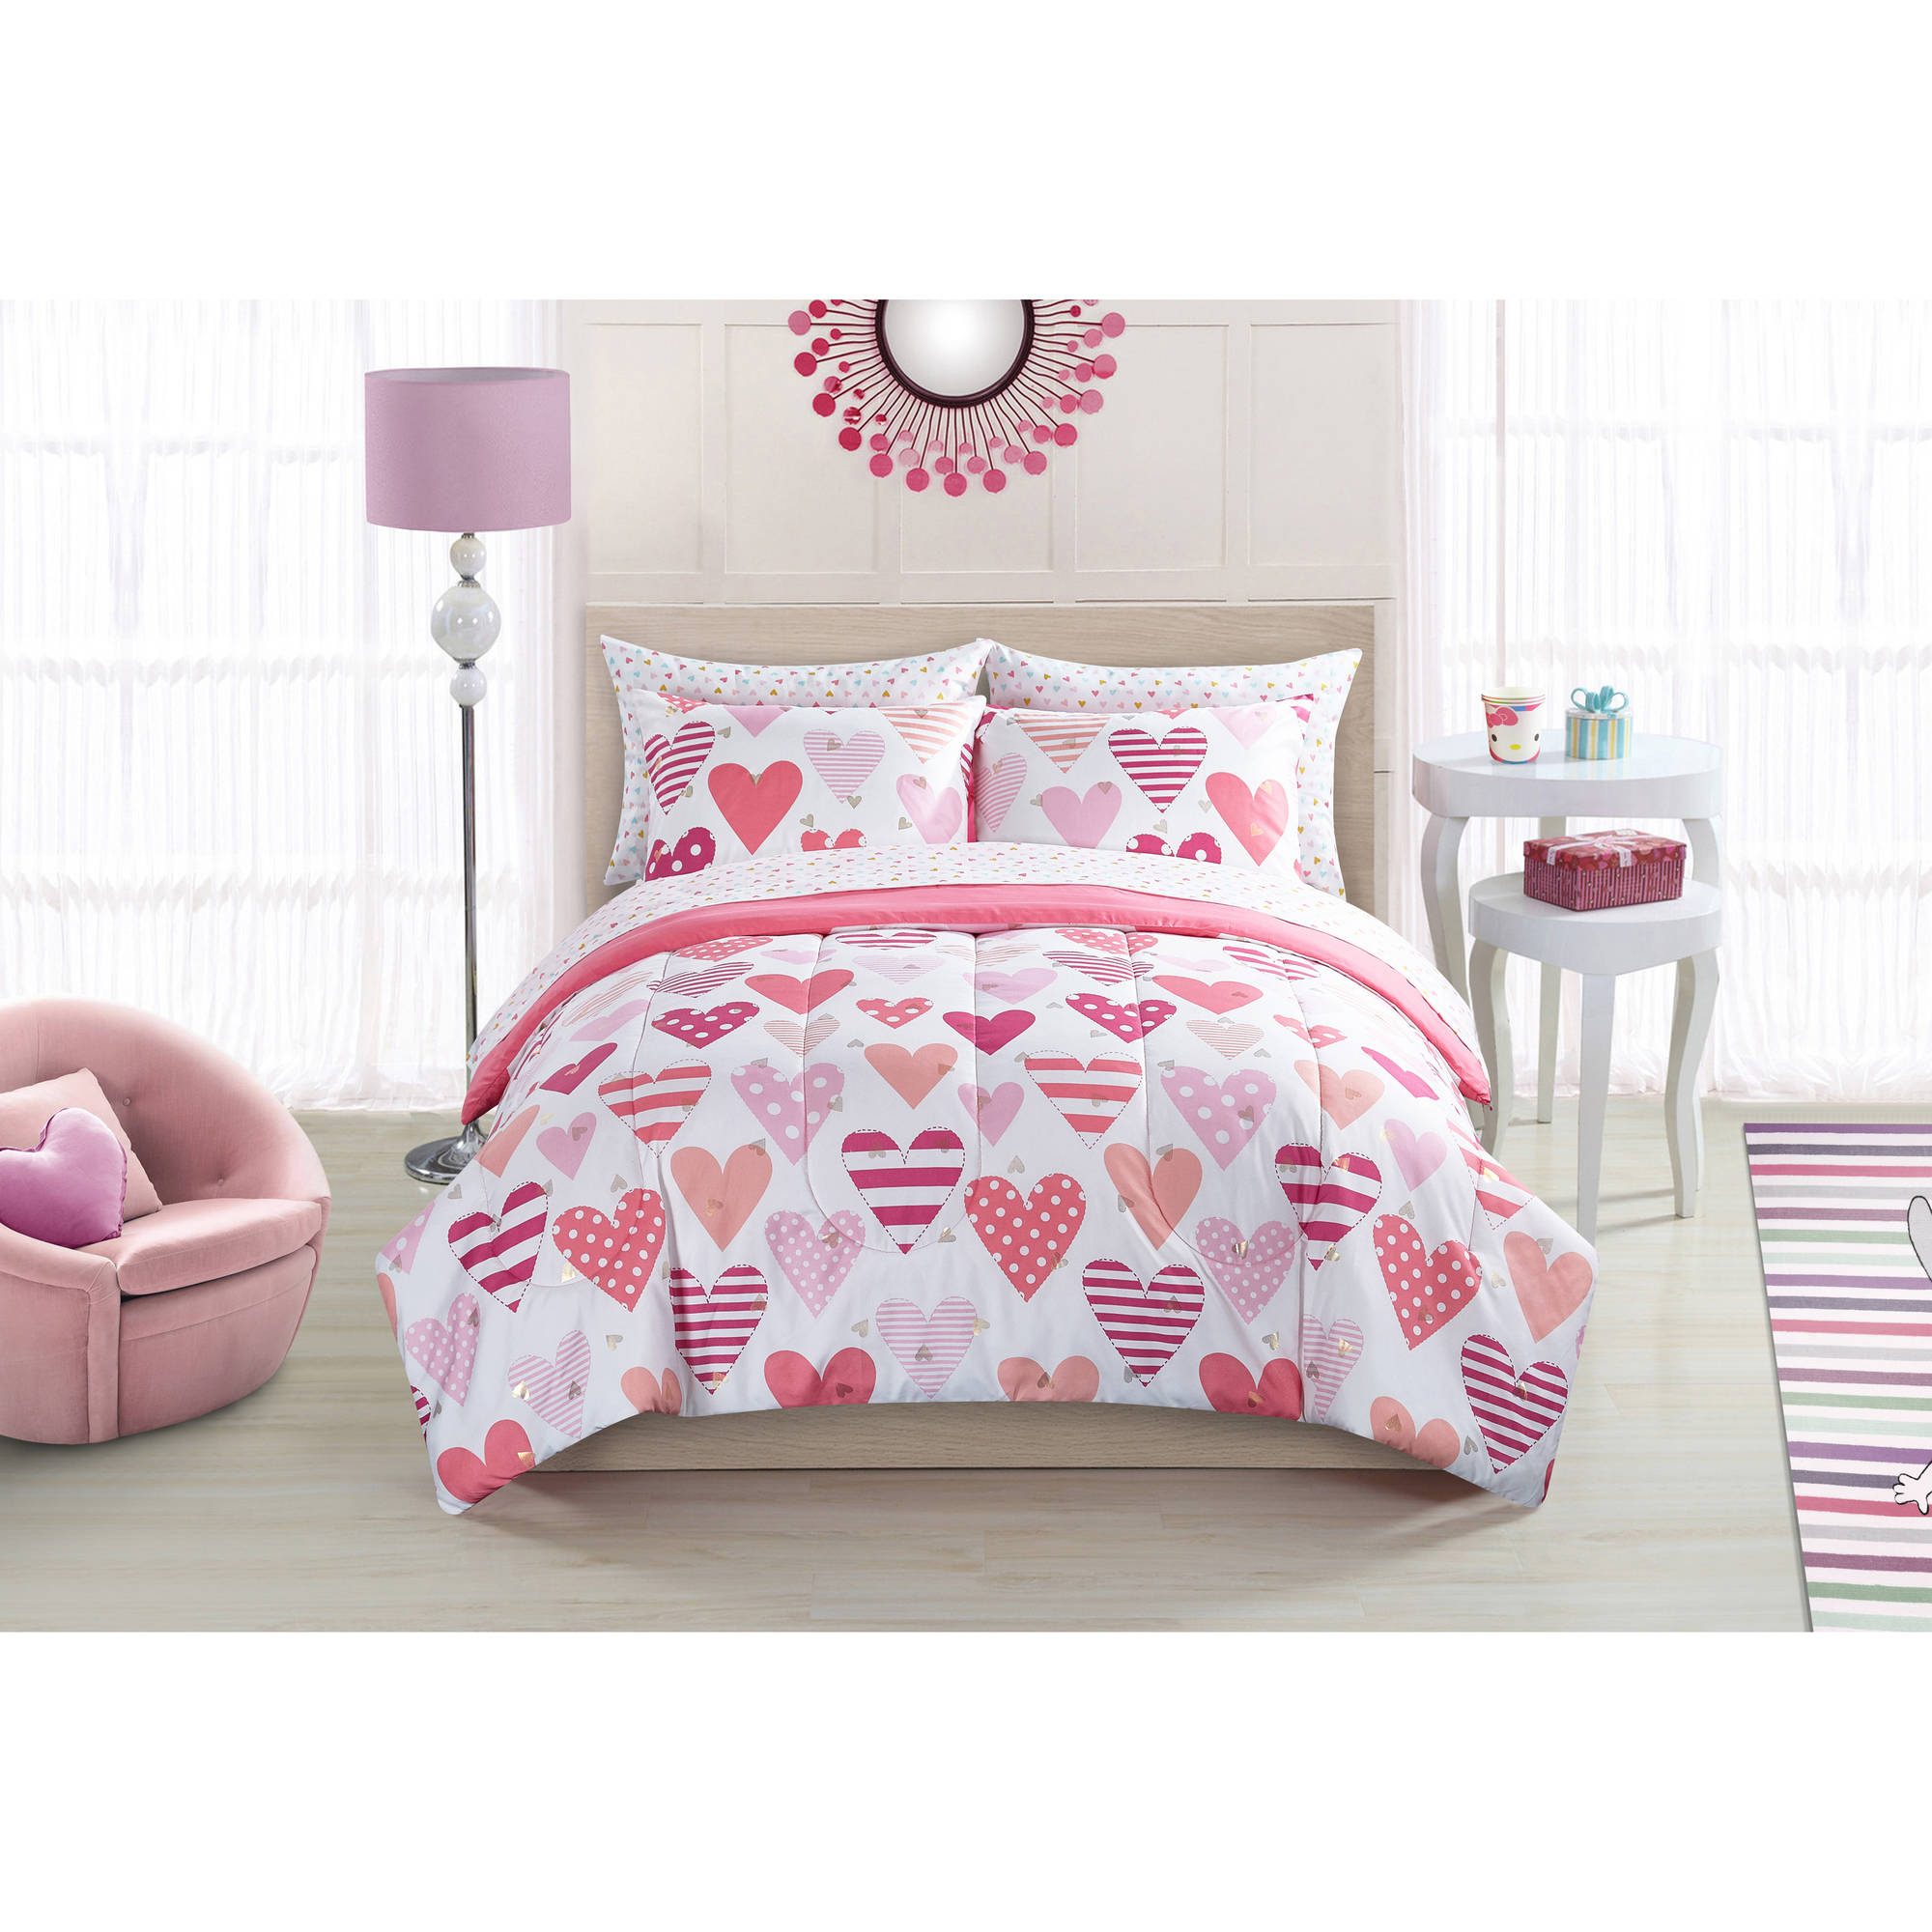 Pink and white polka dot bedding - Pink And White Polka Dot Bedding 36